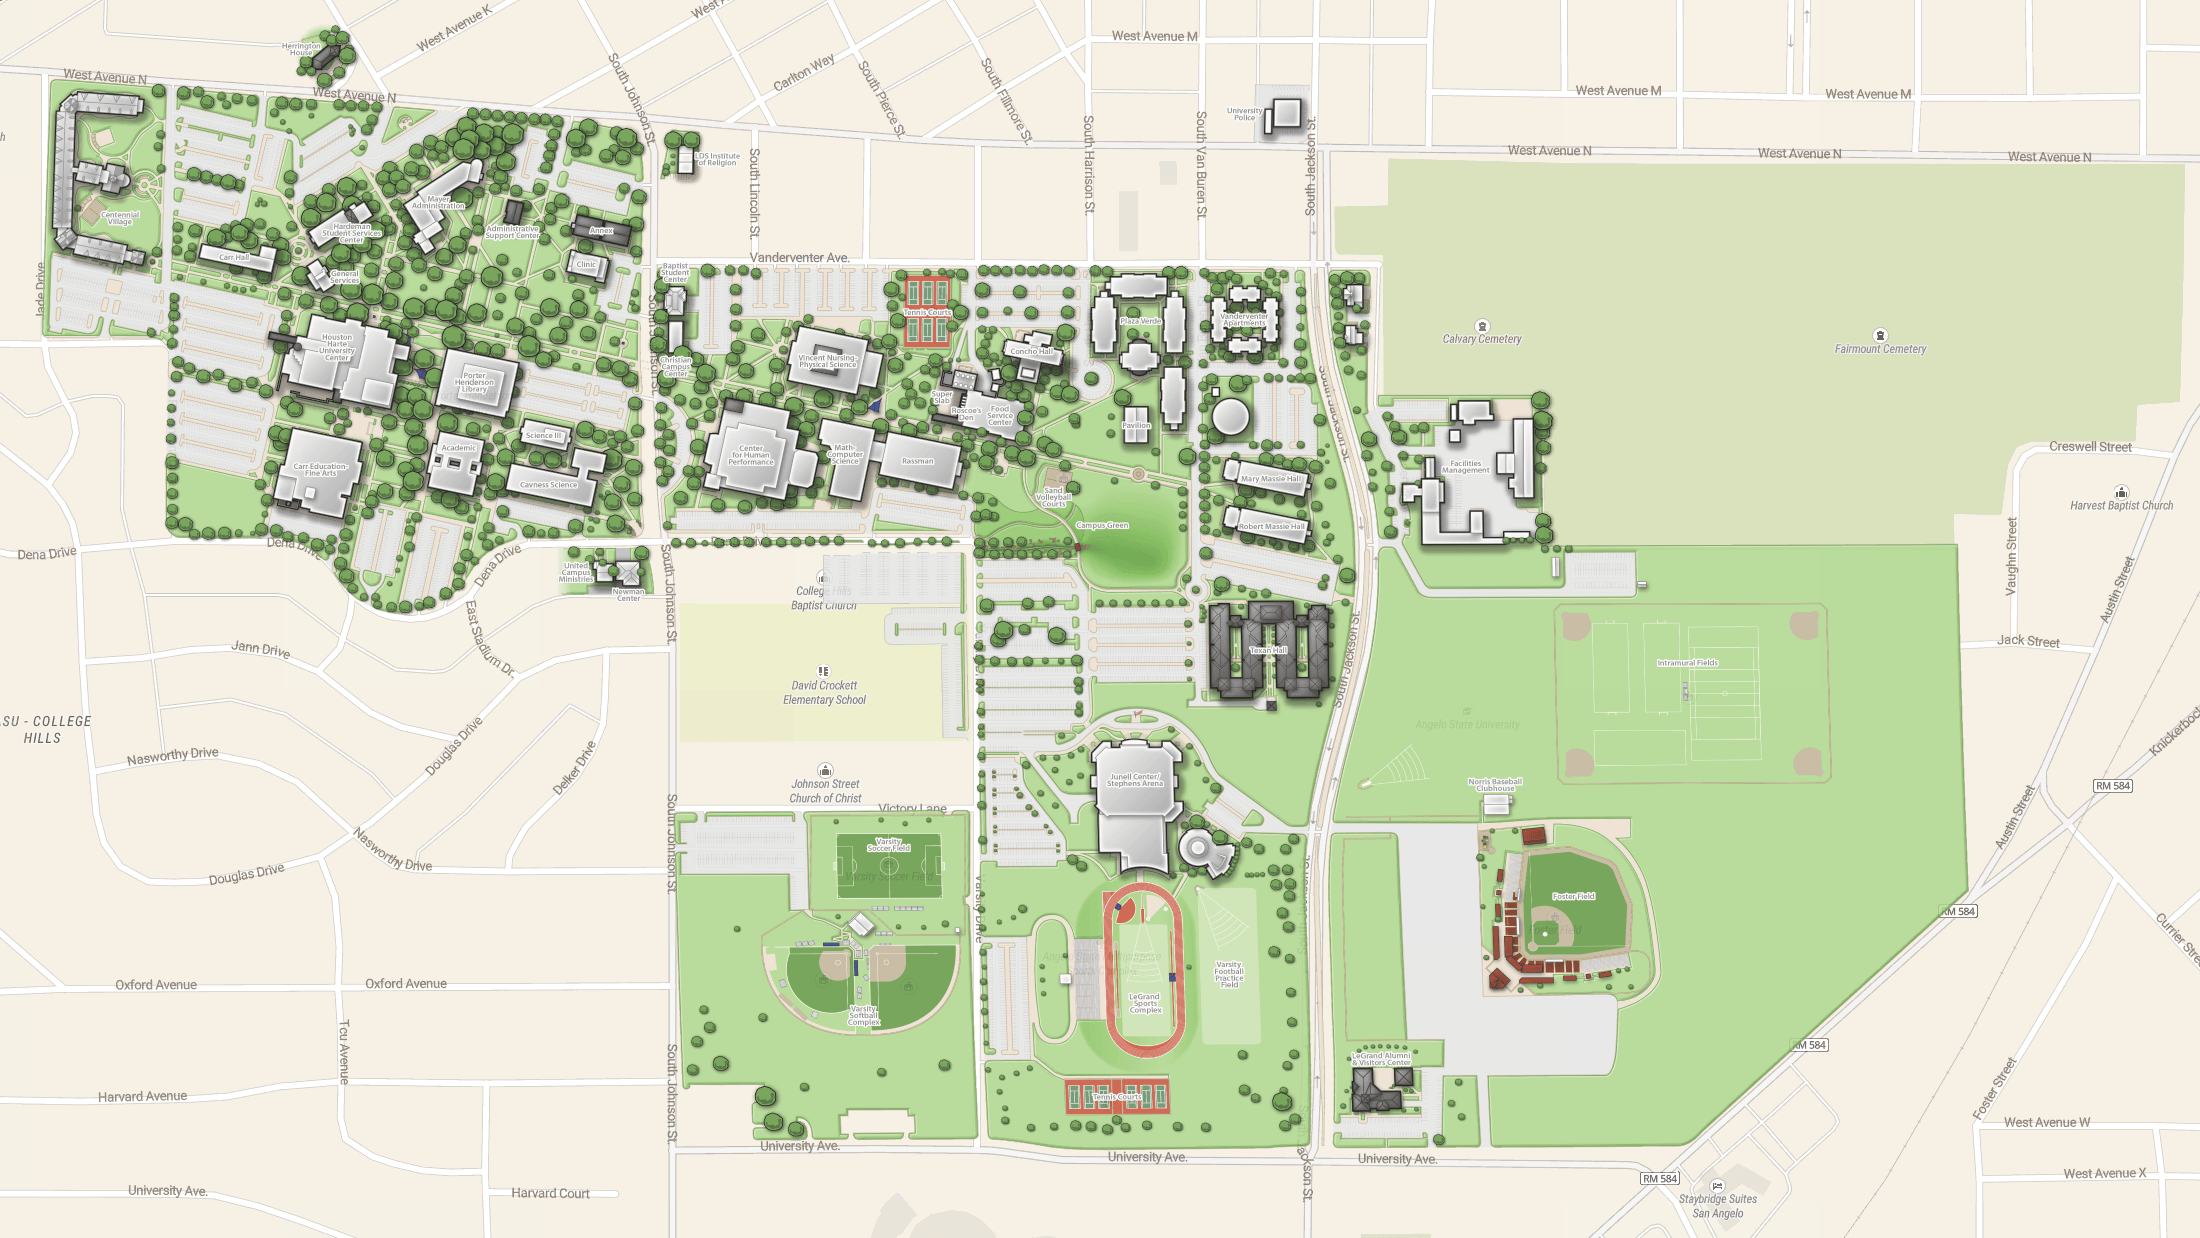 Custom made campus plan on the Street map as a background